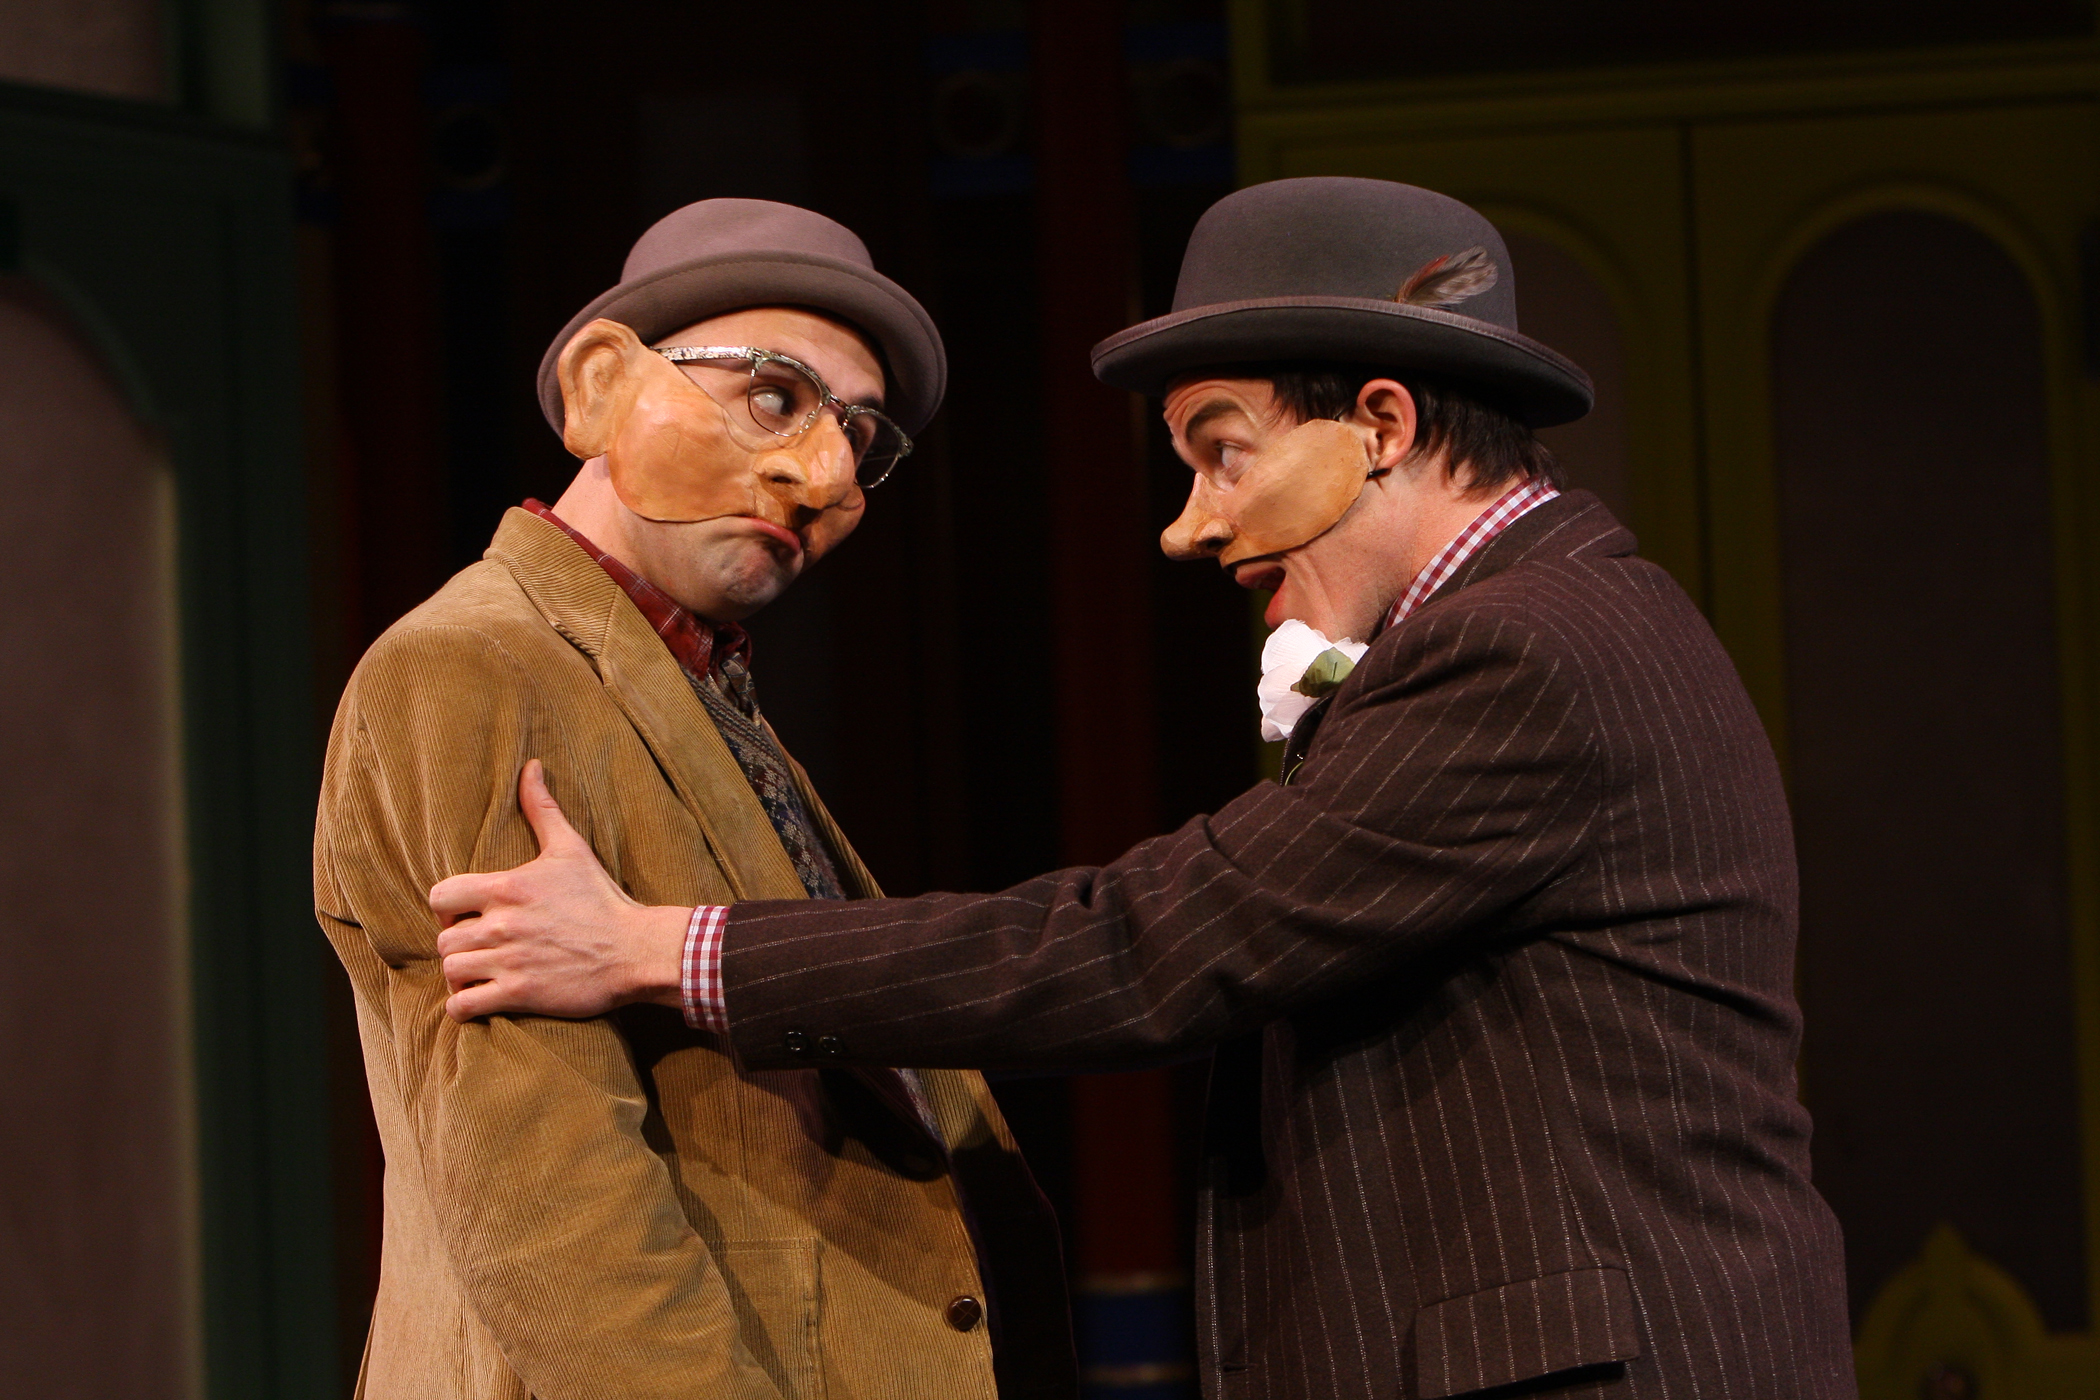 (L-R) Dromio of Syracuse (Nathan Keepers) and his master, Antipholus of Syracuse (Darragh Kennan), in The Comedy of Errors, on stage at Folger Theatre through March 6, 2011. Photo: Carol Pratt.